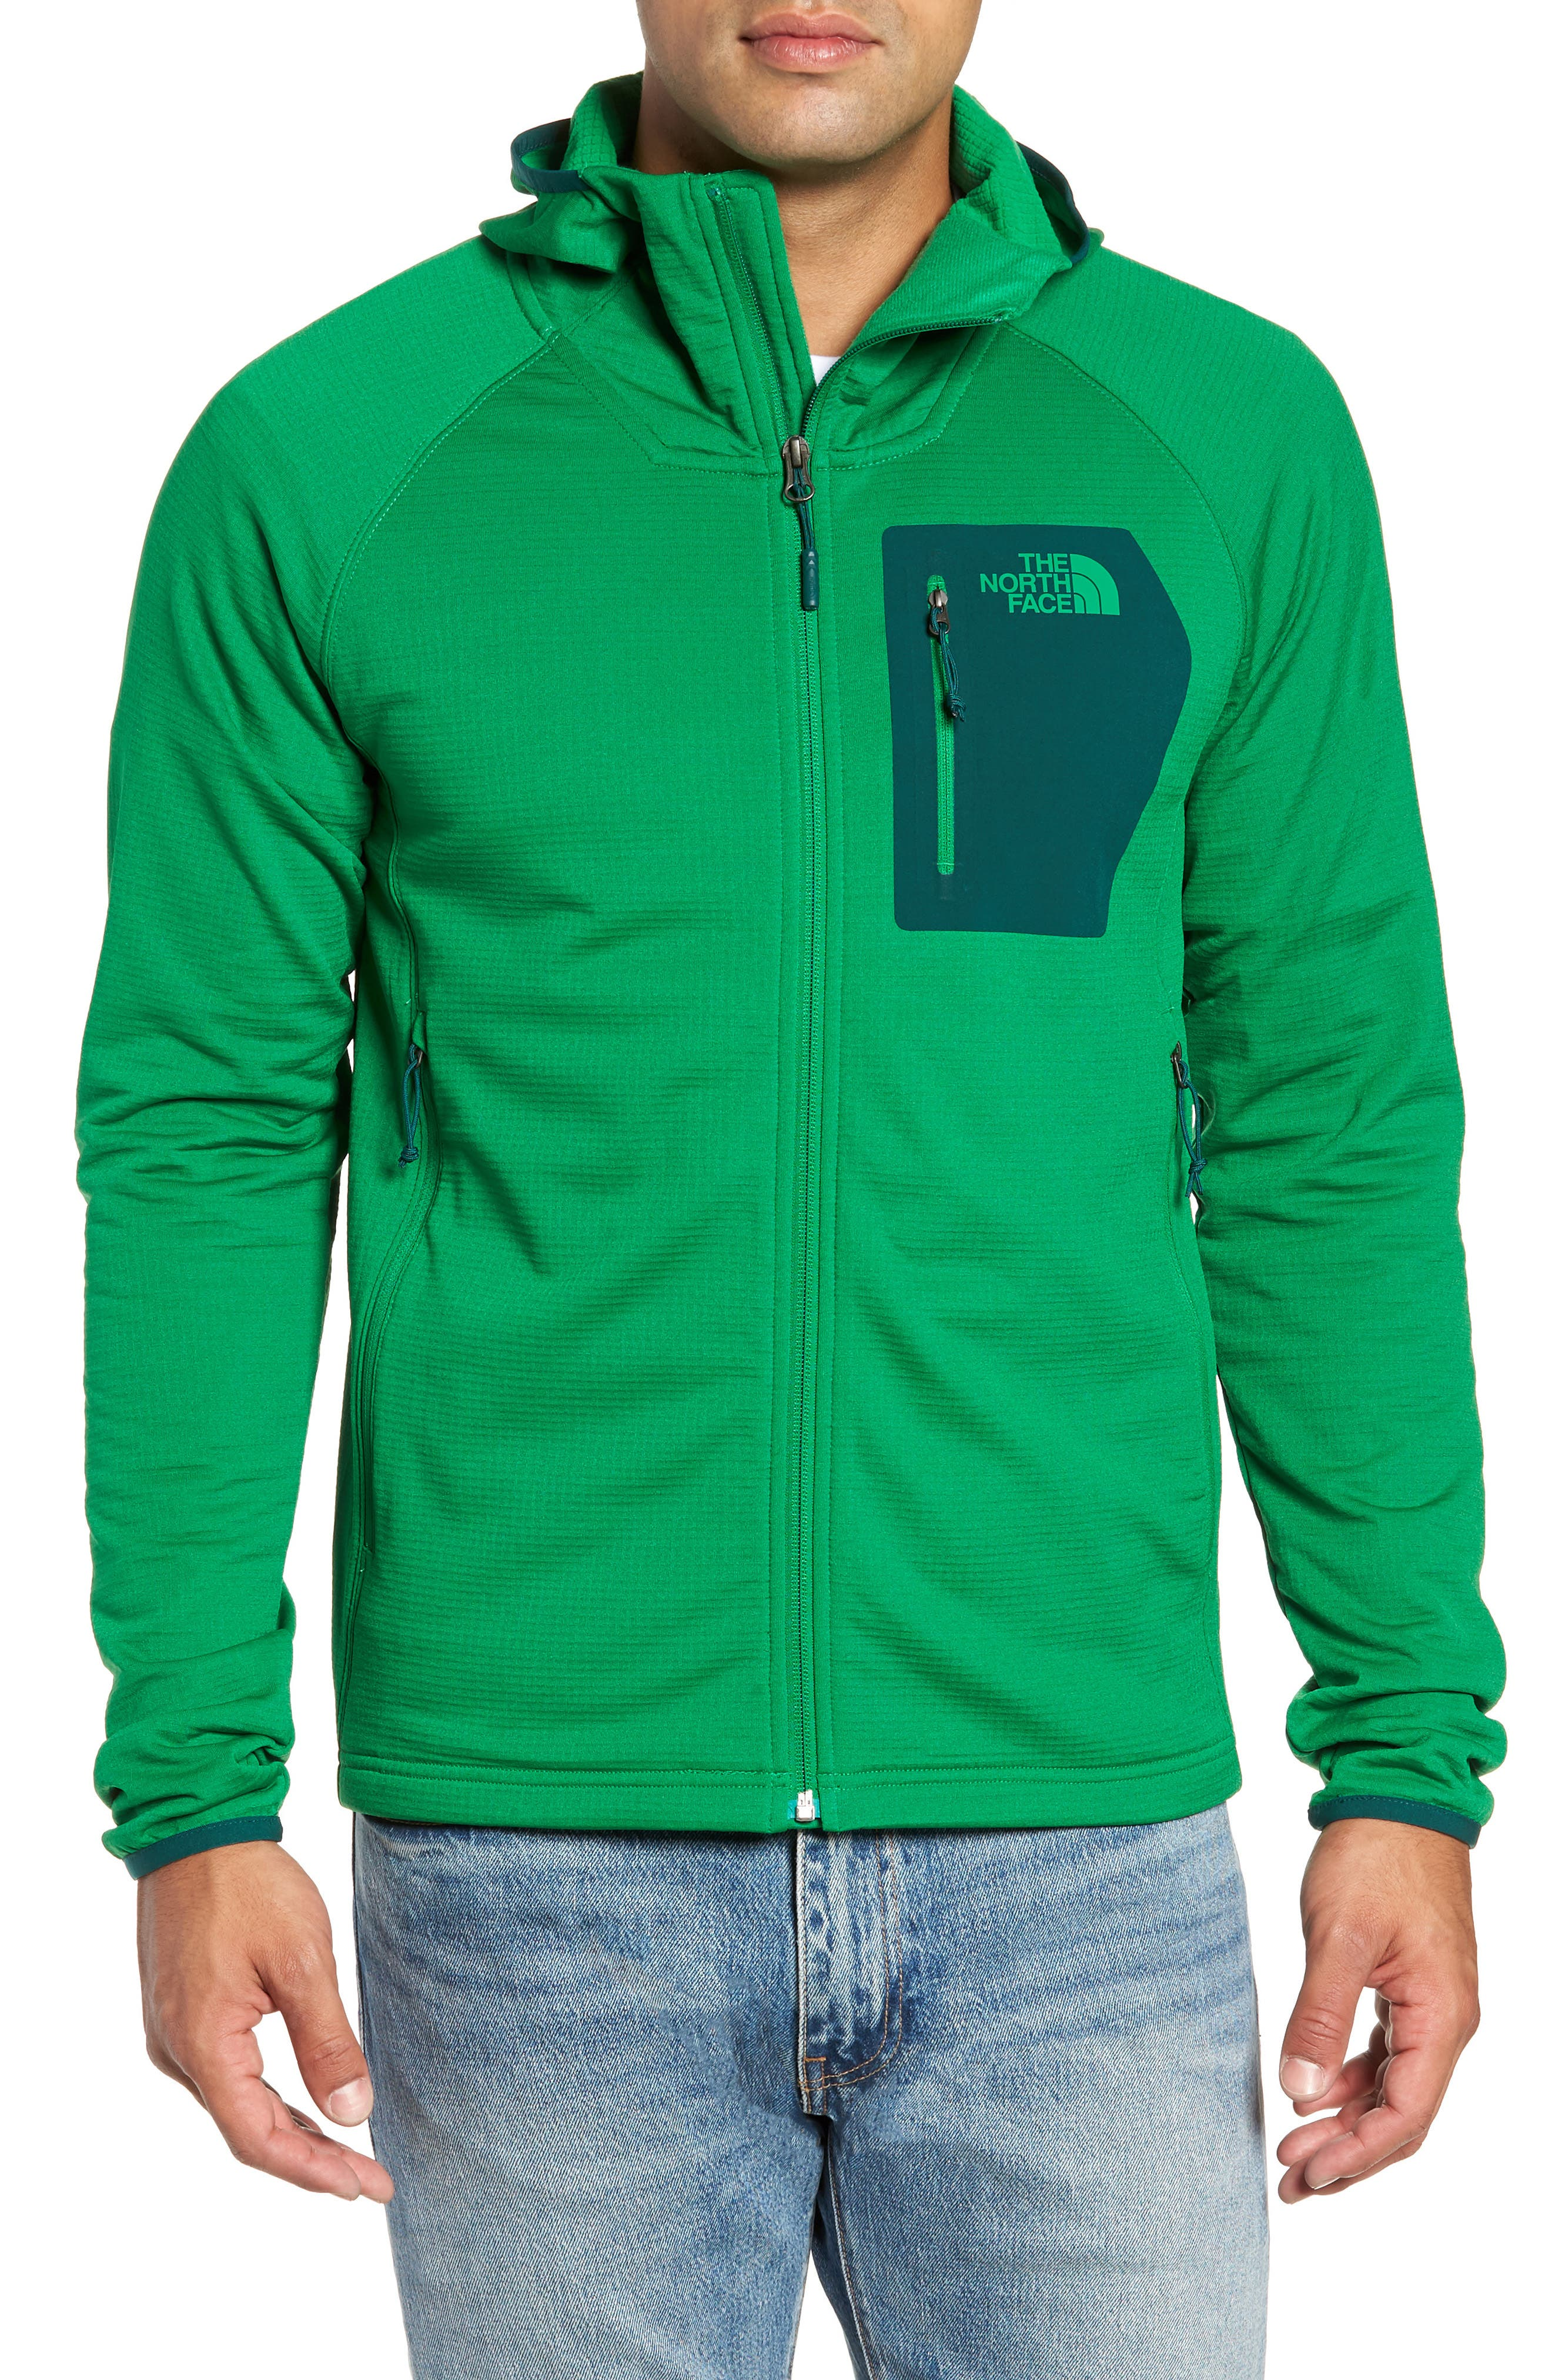 THE NORTH FACE, Borod Zip Fleece Jacket, Alternate thumbnail 5, color, 301